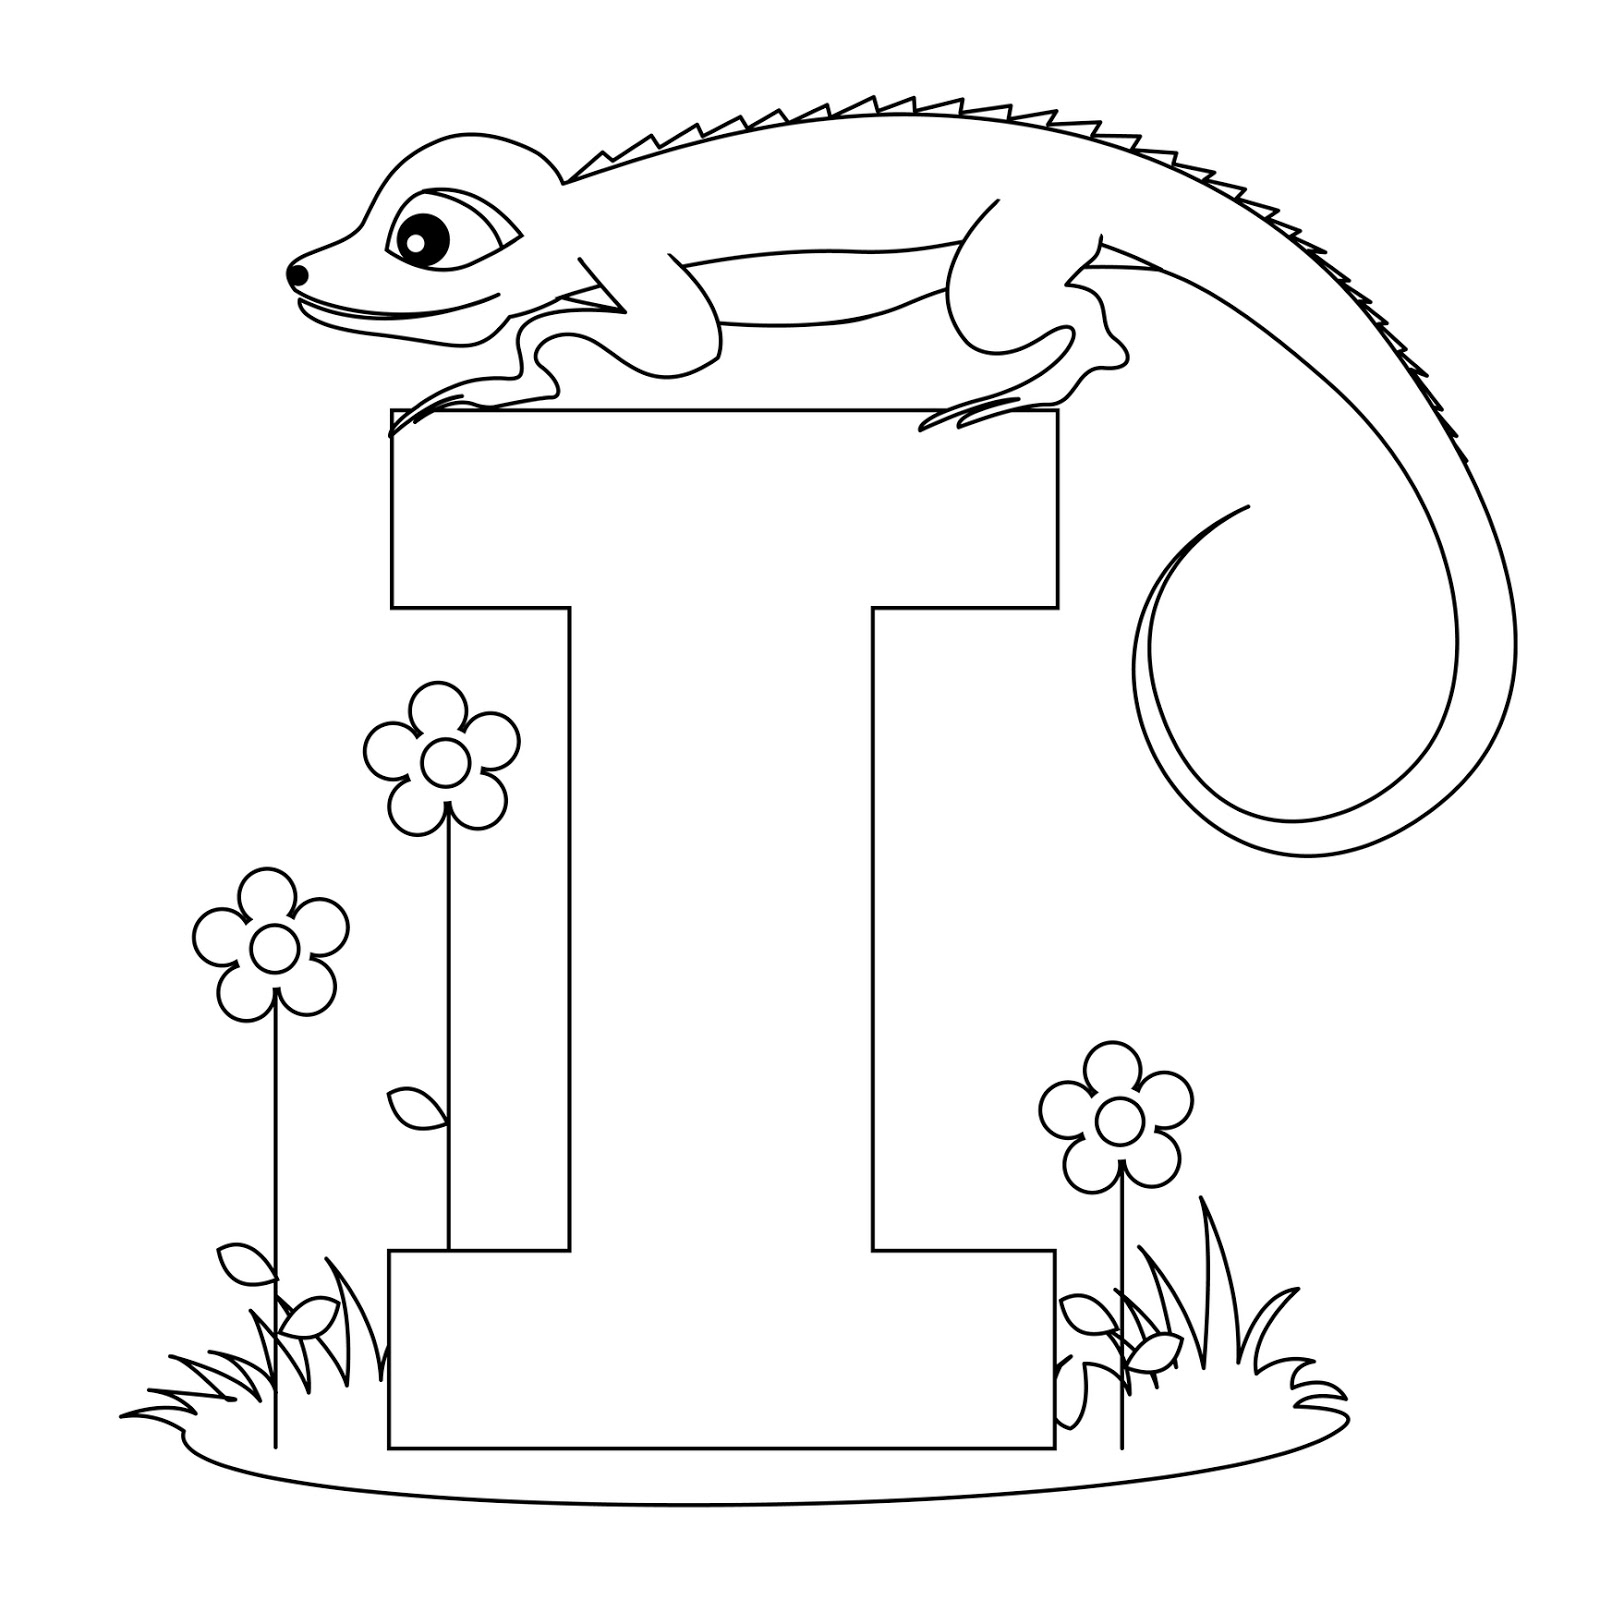 coloring pages abc - free coloring pages alphabet letters